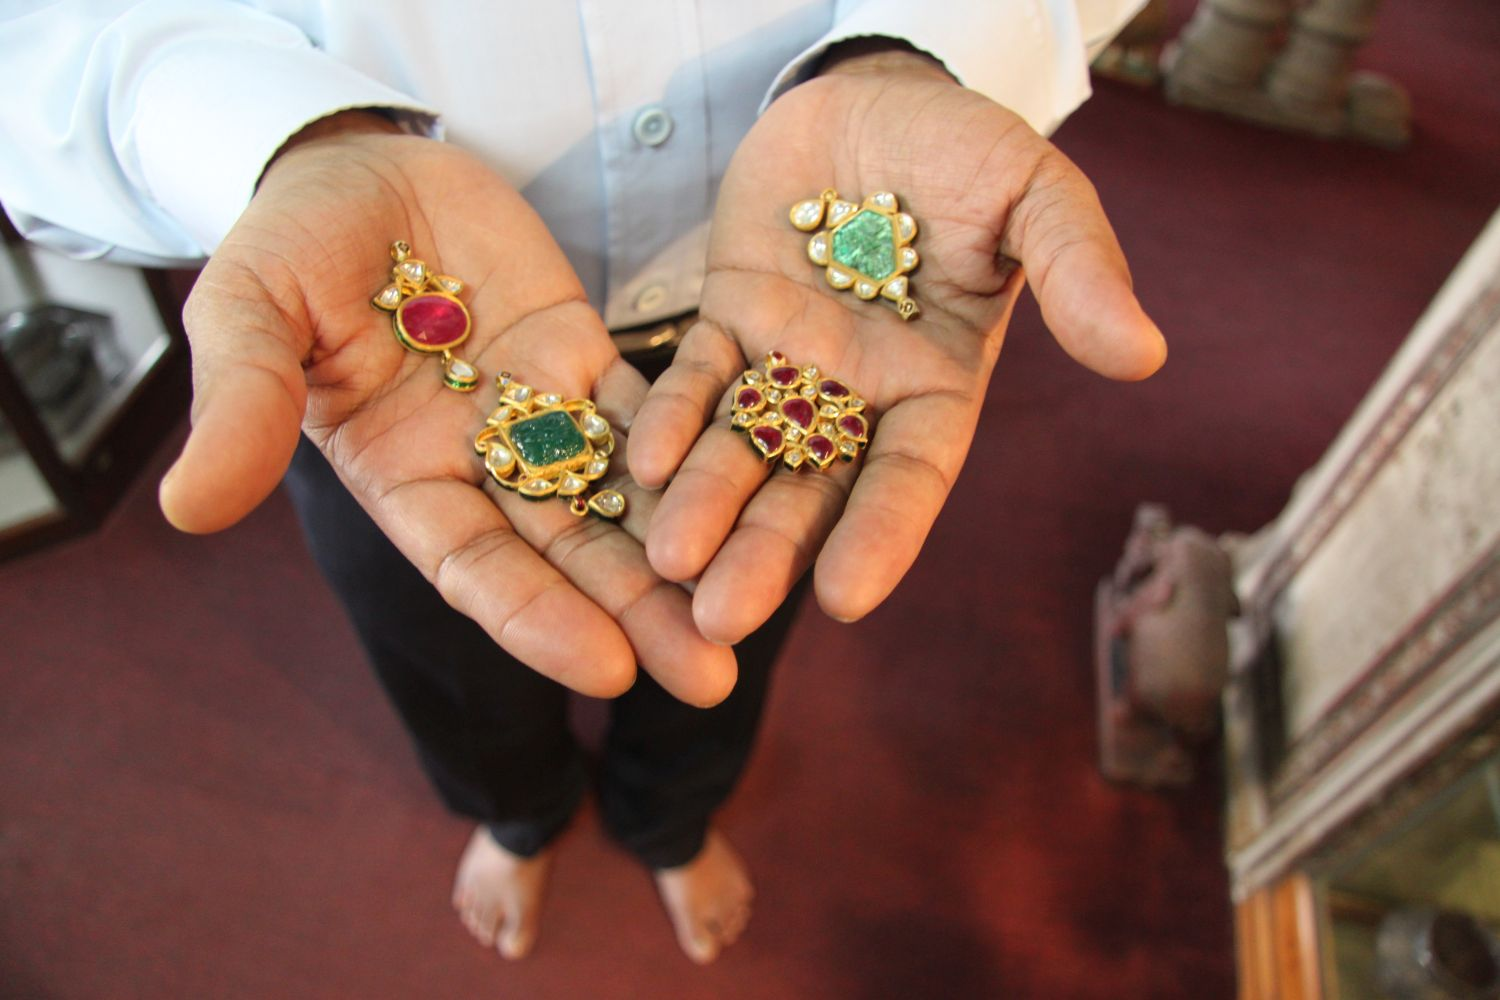 Jaipur | Royal Gems and Arts 9 | Haveli of the 17th century | Jewelery and antique | Jeweler of royal Rajasthan families | Santi Choudary owner with preciaux stones| Photo sandrine cohen